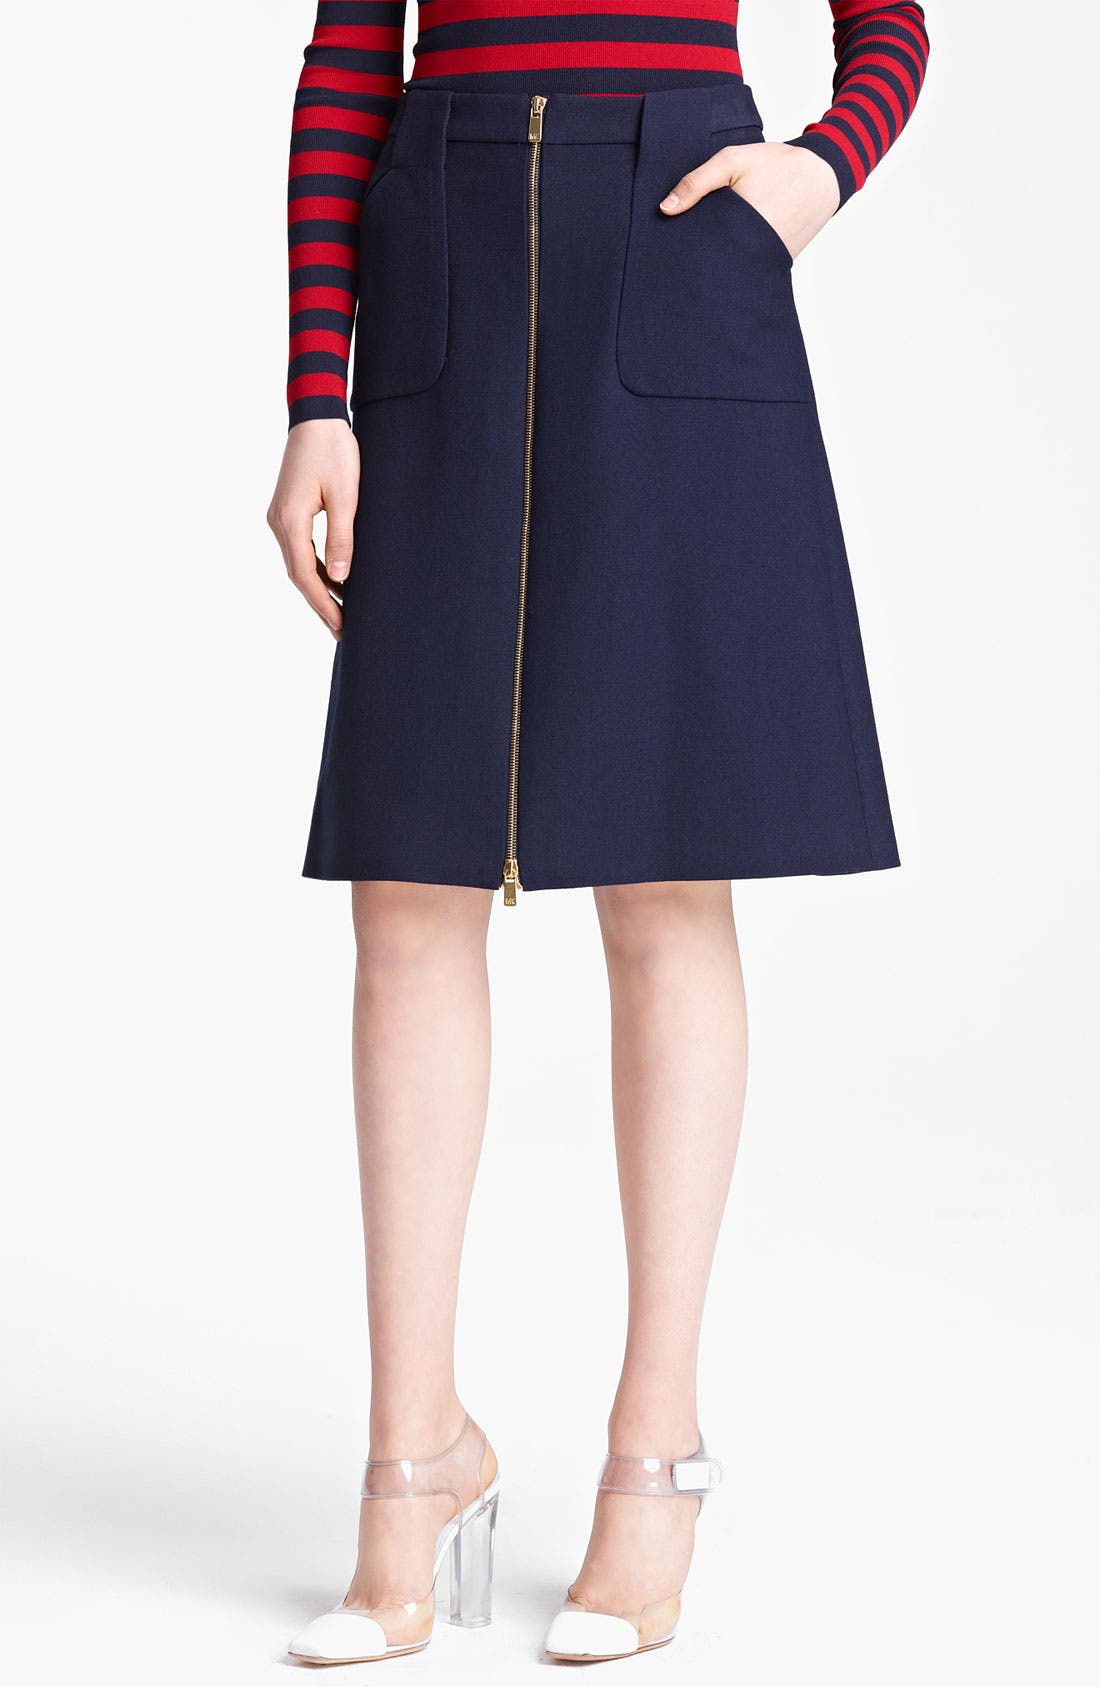 Alternate Image 1 Selected - Michael Kors Gabardine Skirt